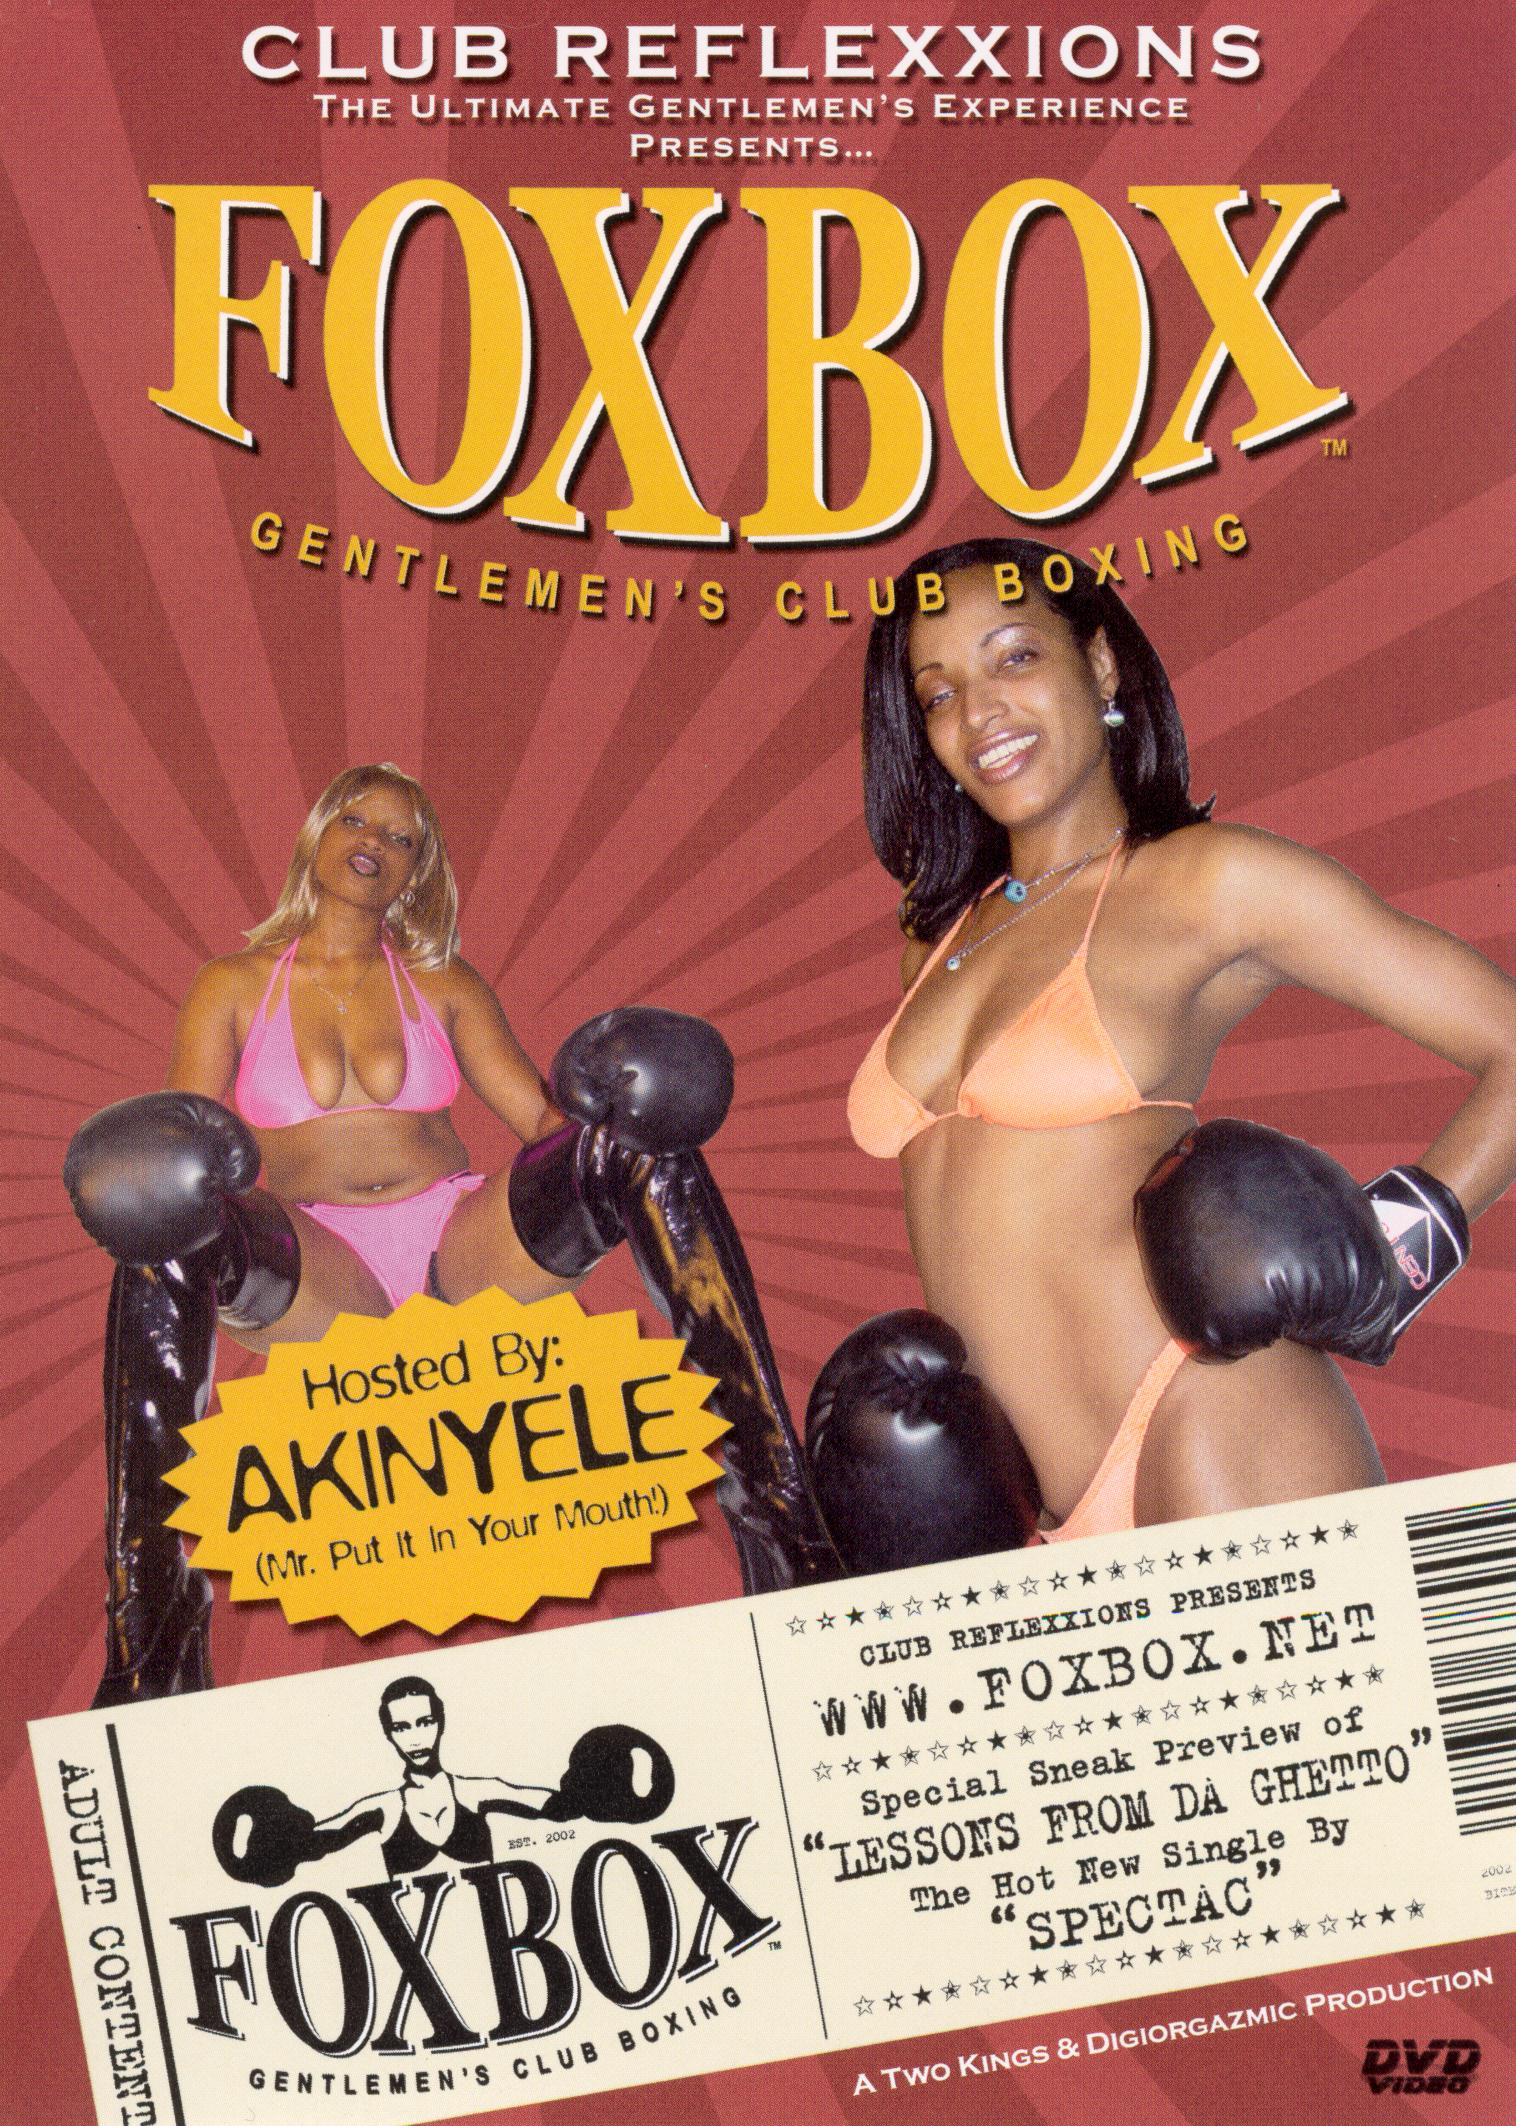 Foxbox: Gentlemen's Club Boxing